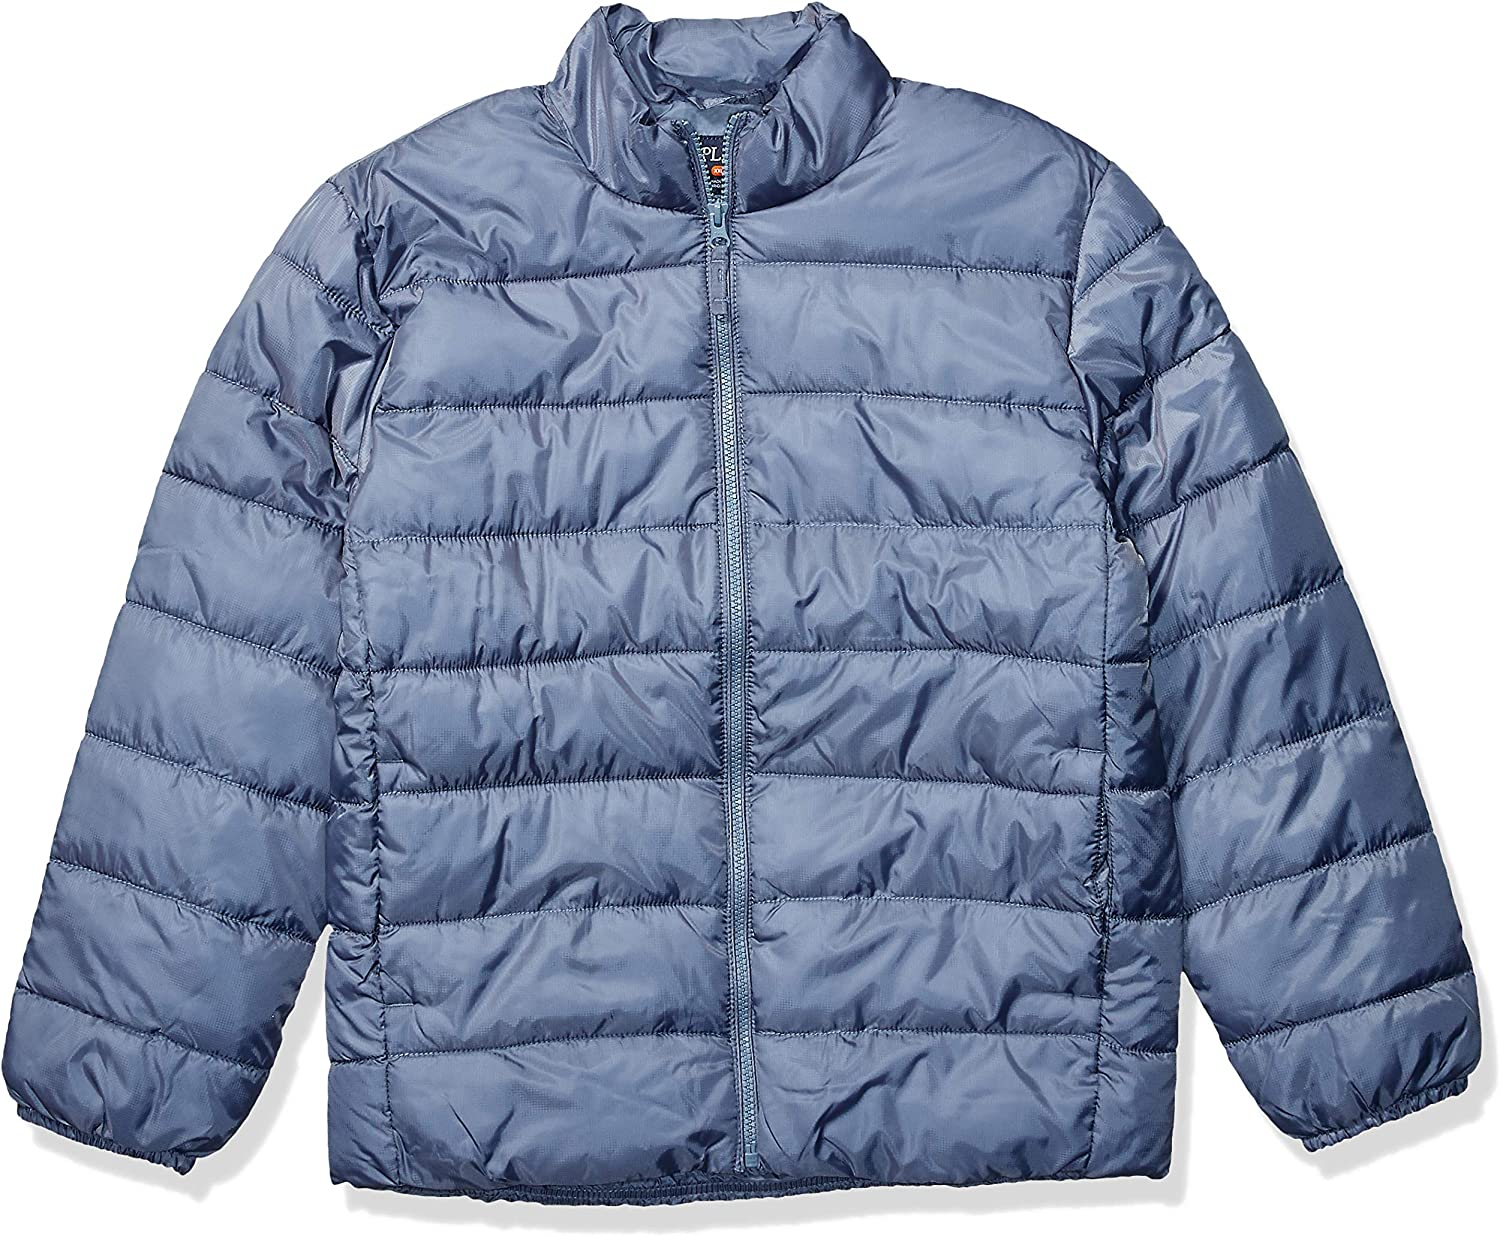 Inexpensive The Children's Place Boys' Jacket Puffer 4 Max 46% OFF